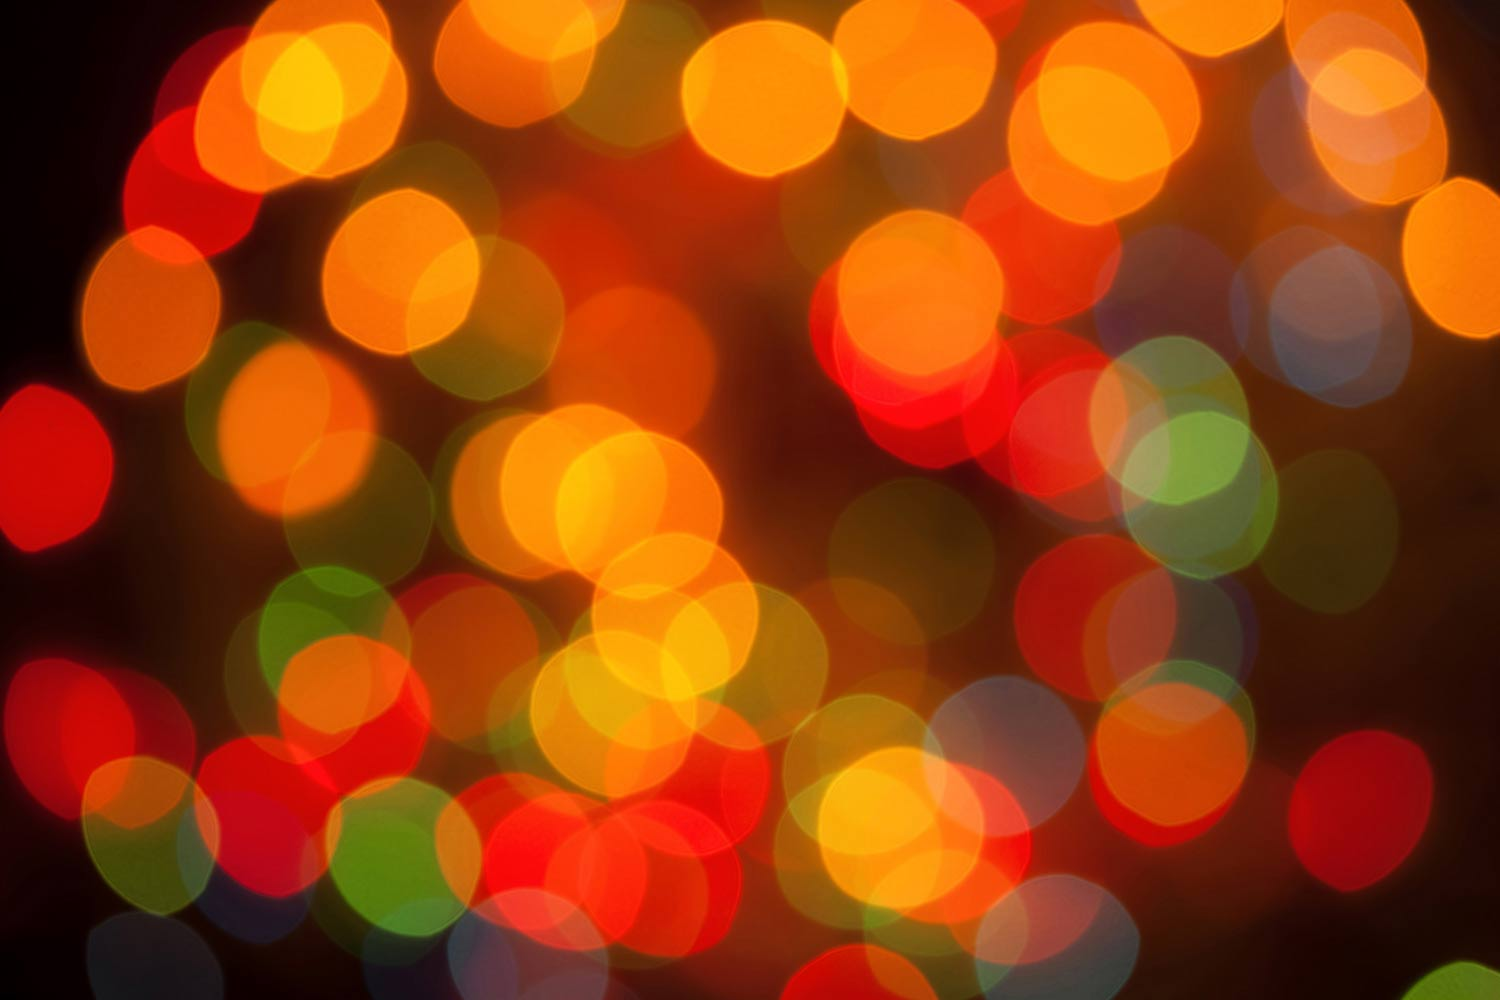 Christmas lights wallpapers wallpaper cave along with wallpapers for